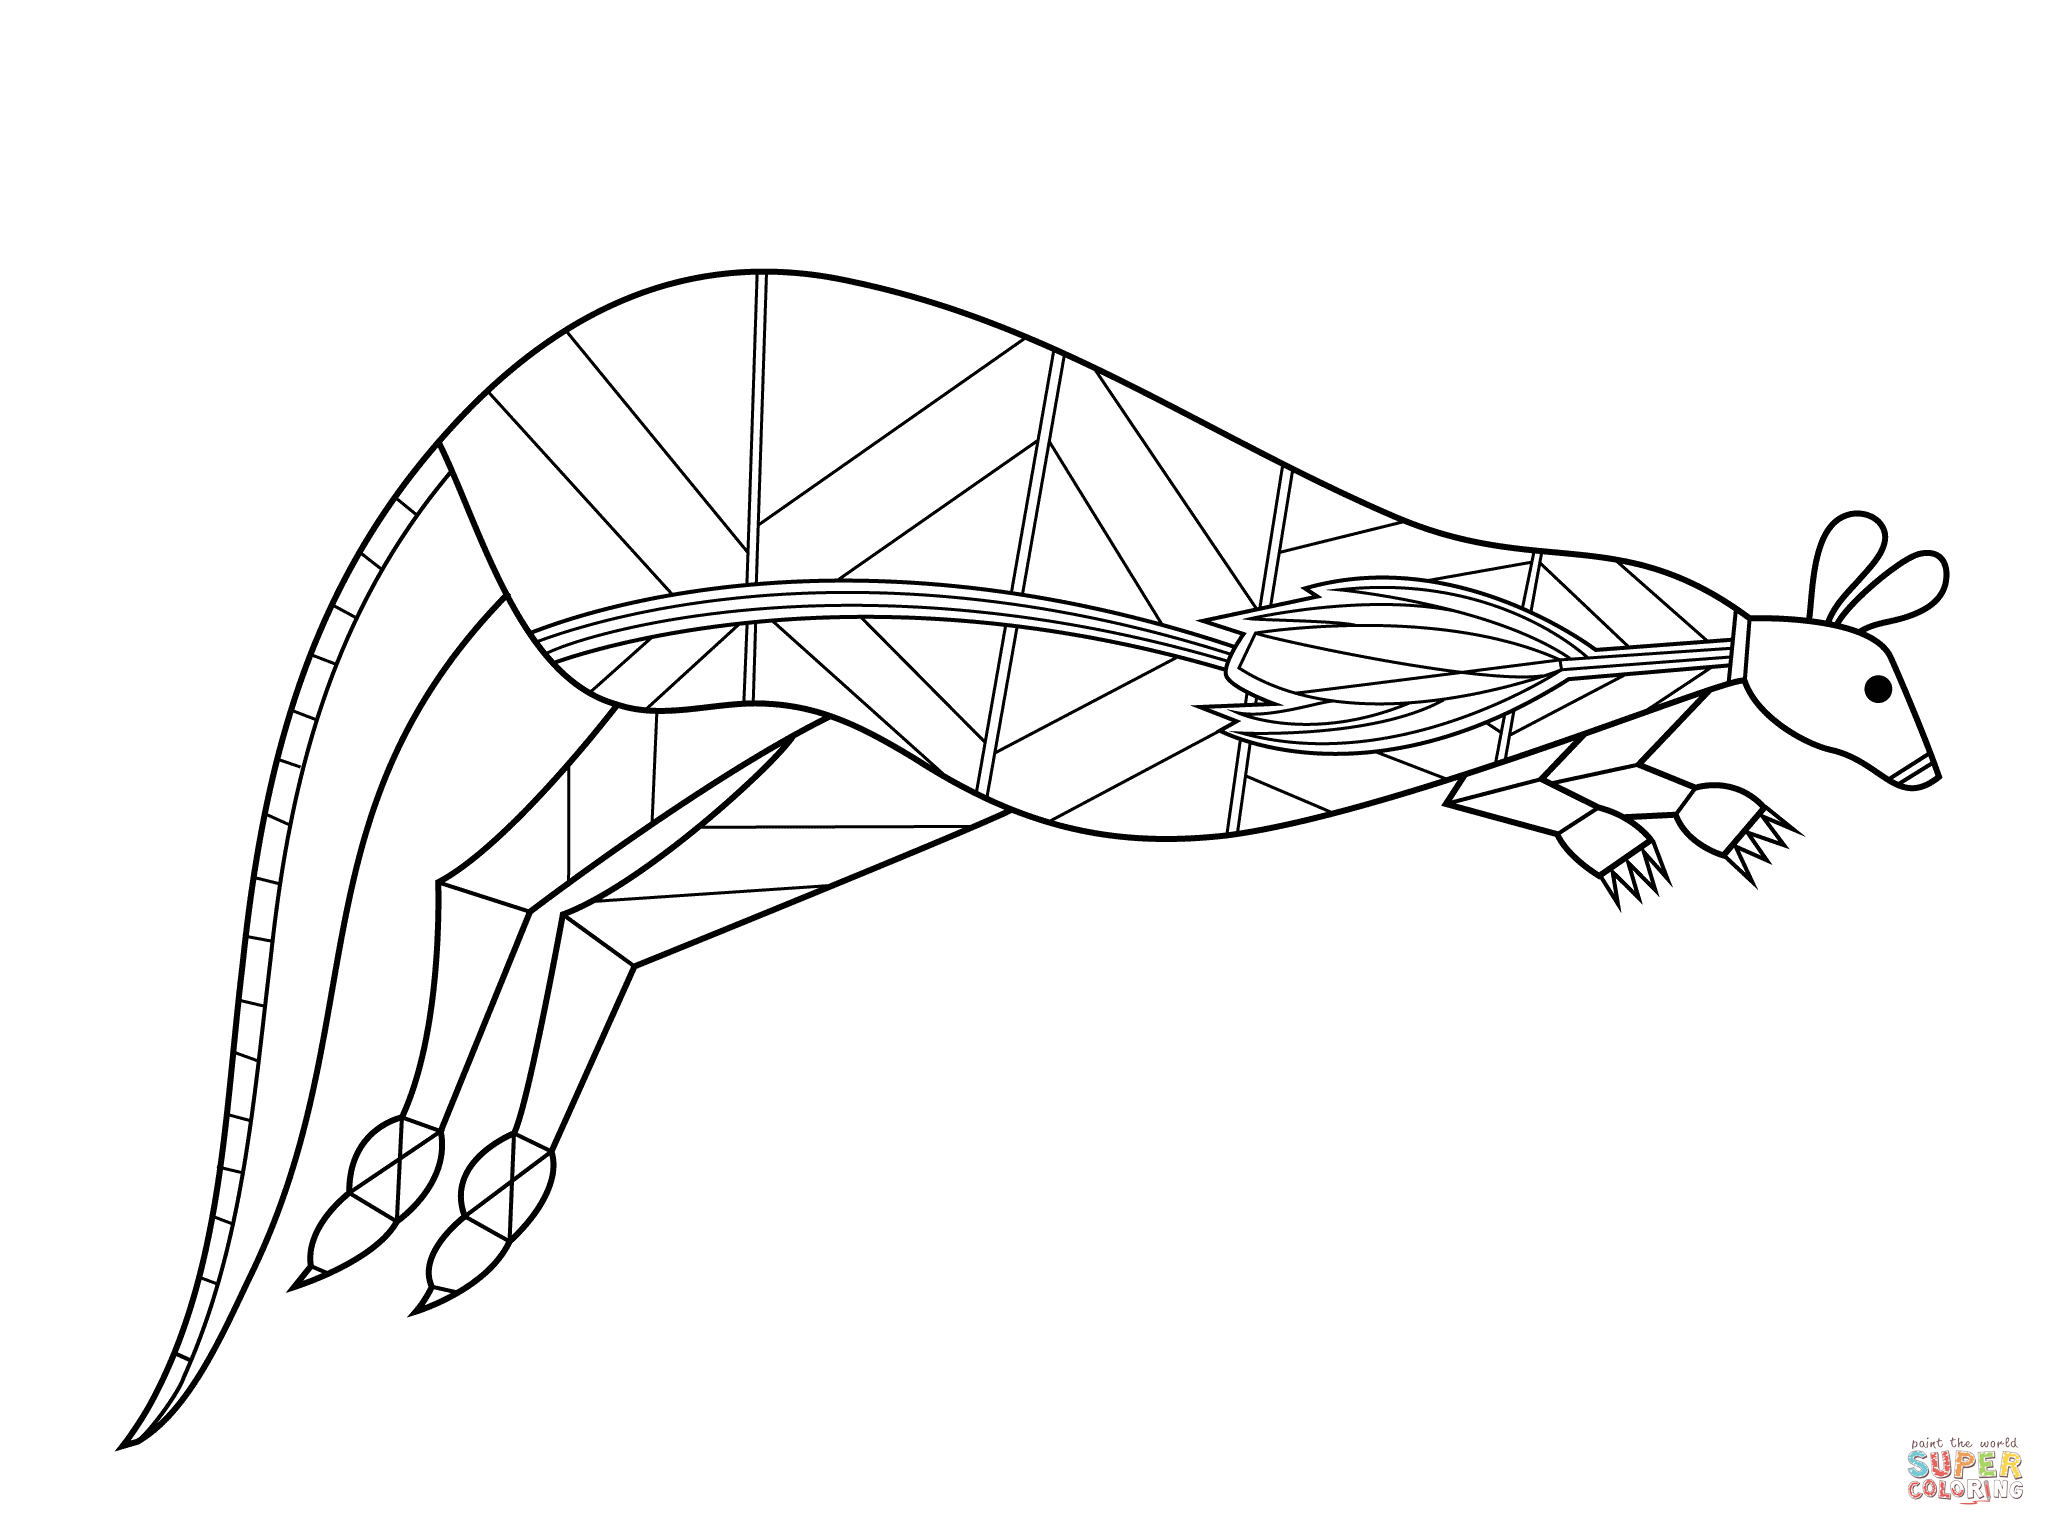 2046x1526 Platypus Aboriginal Art Coloring Page Free Printable Pages